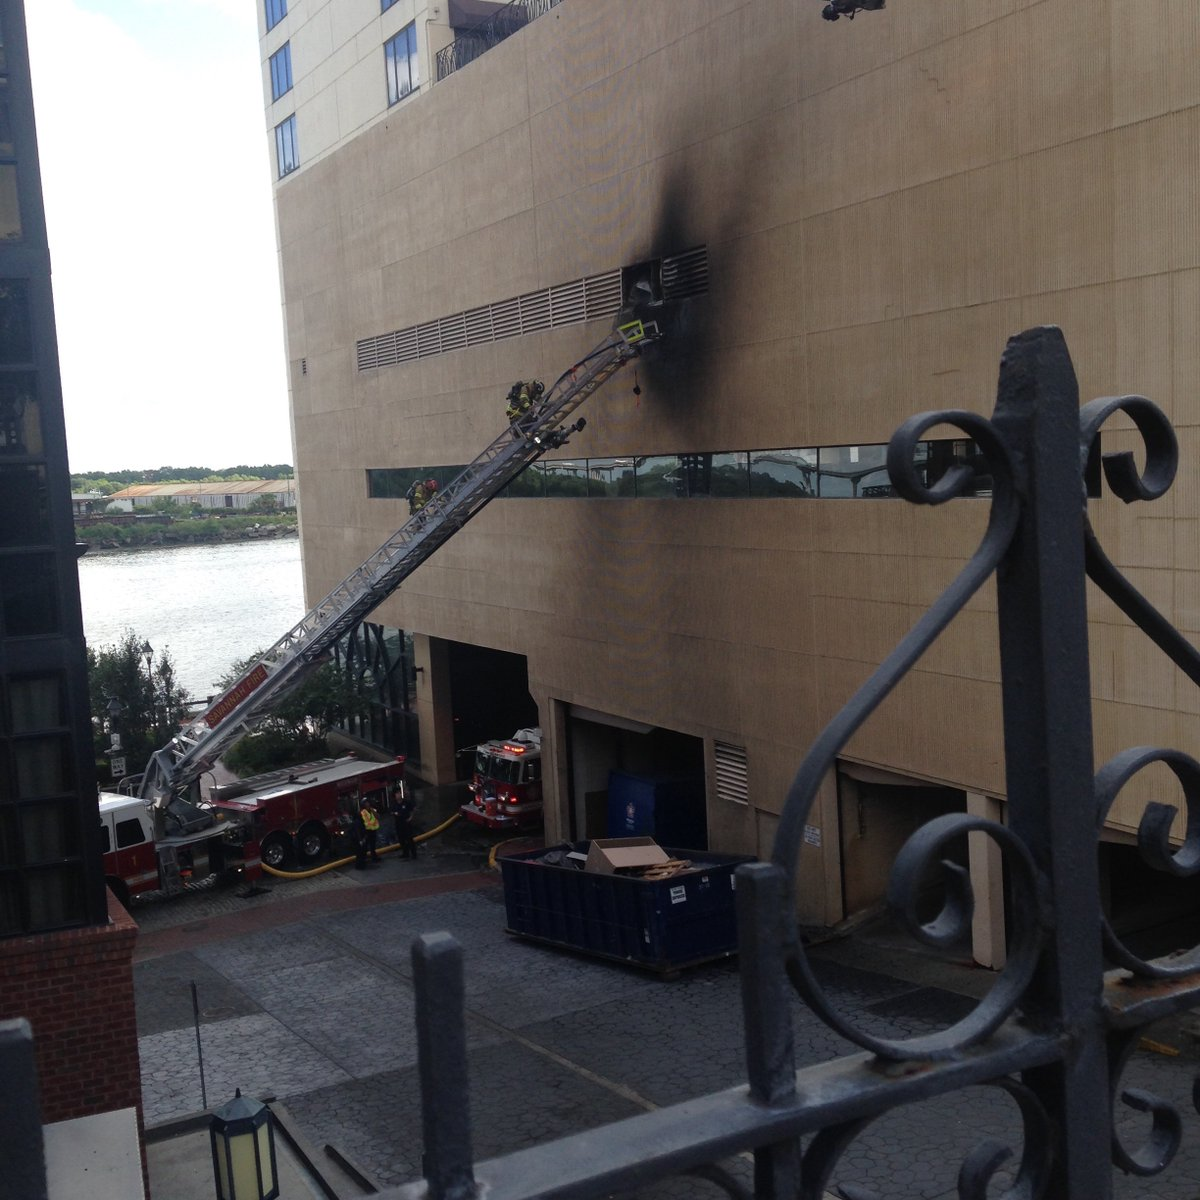 Fire broke out Monday morning at the Hyatt Hotel in Downtown Savannah (Credit: SCMPD)